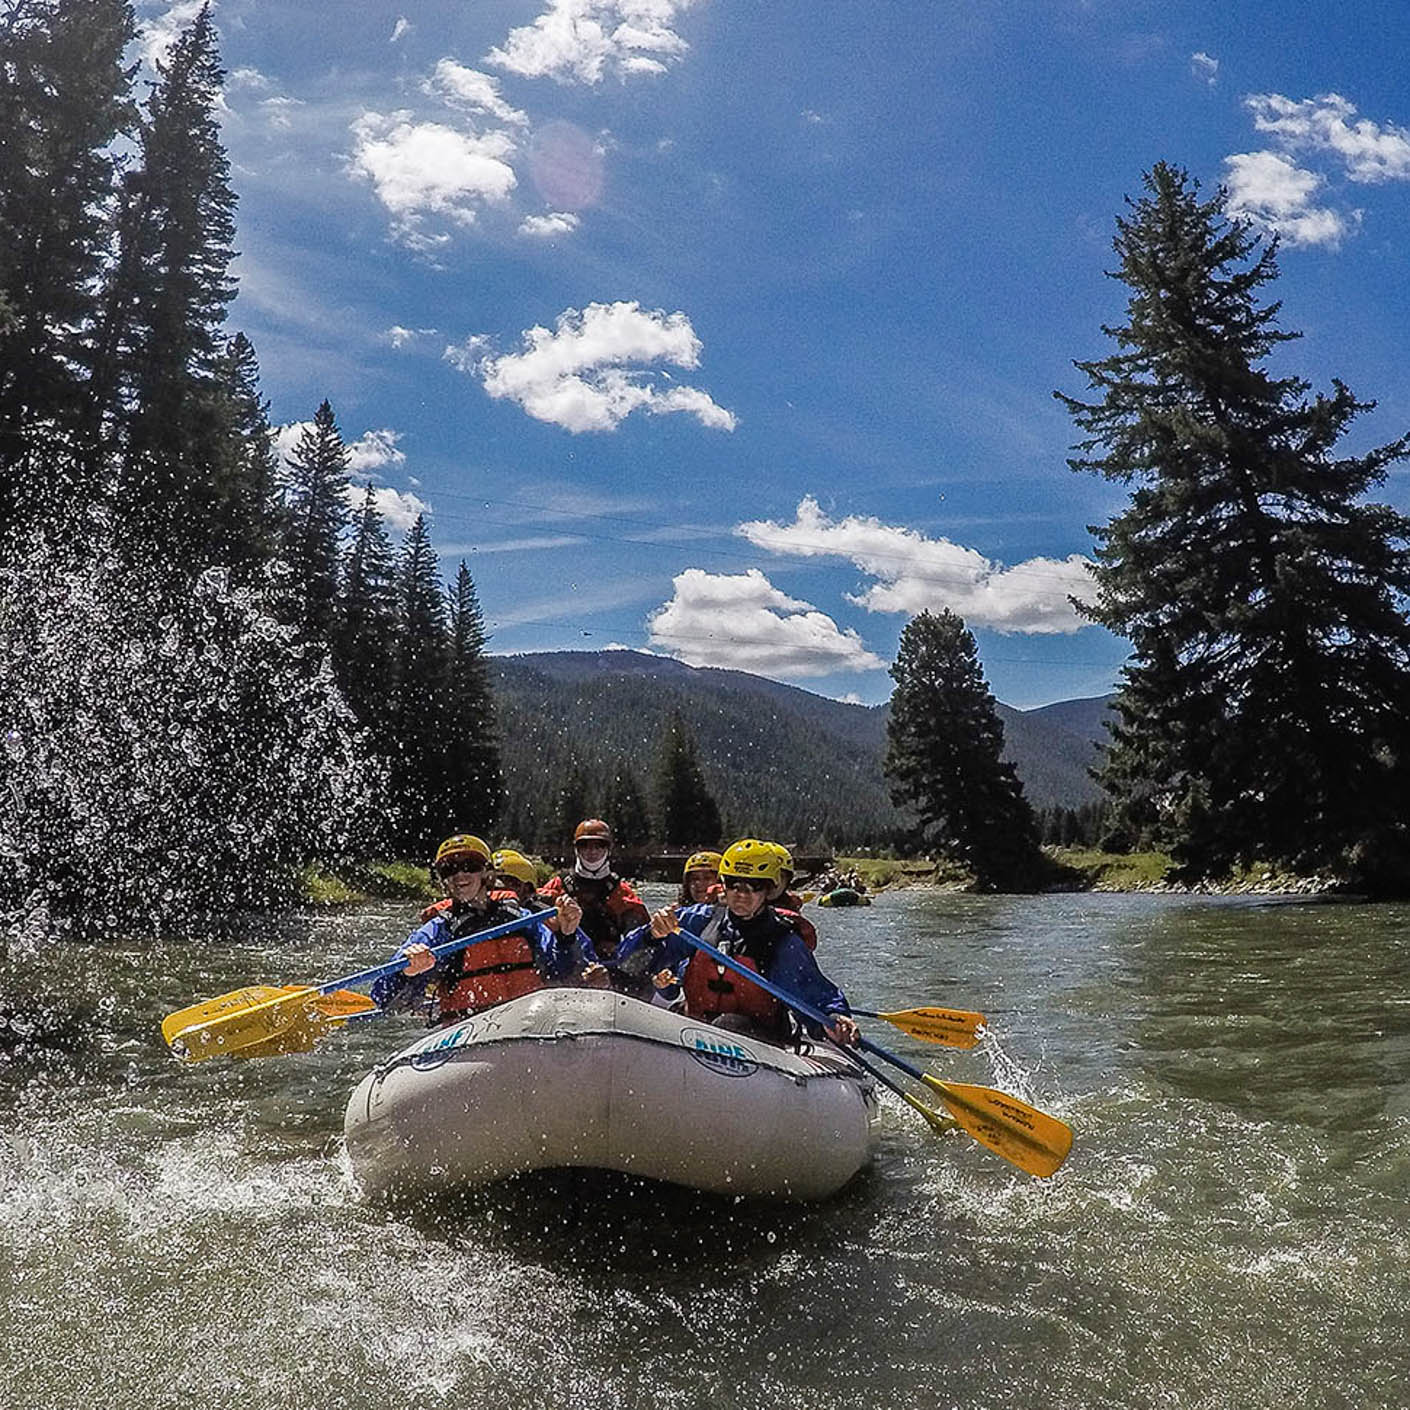 Yellowstone Explorer whitewater rafting